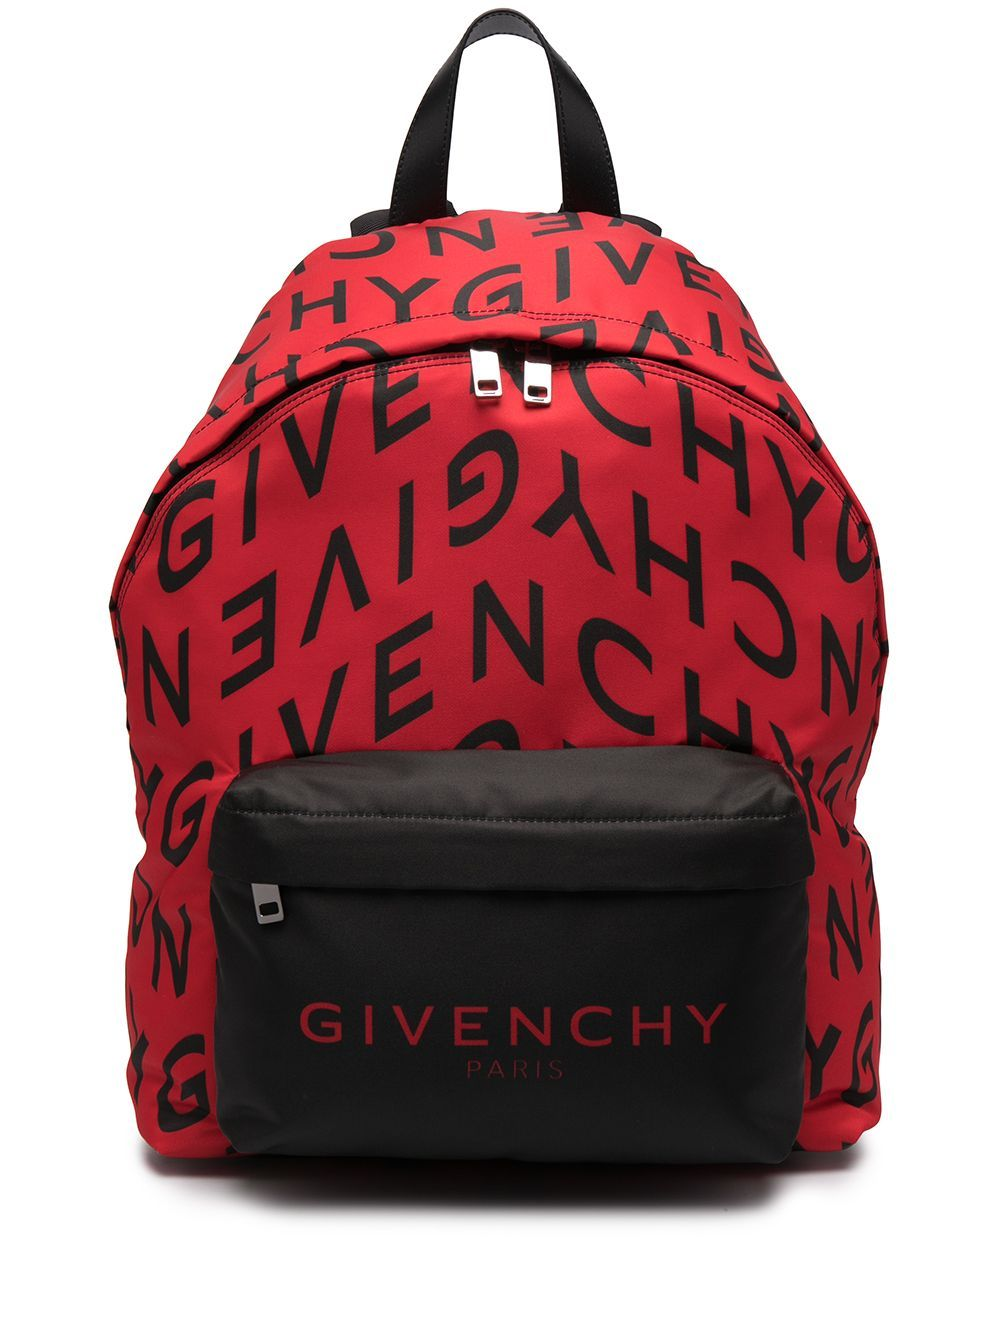 Givenchy GIVENCHY MEN'S RED POLYESTER BACKPACK